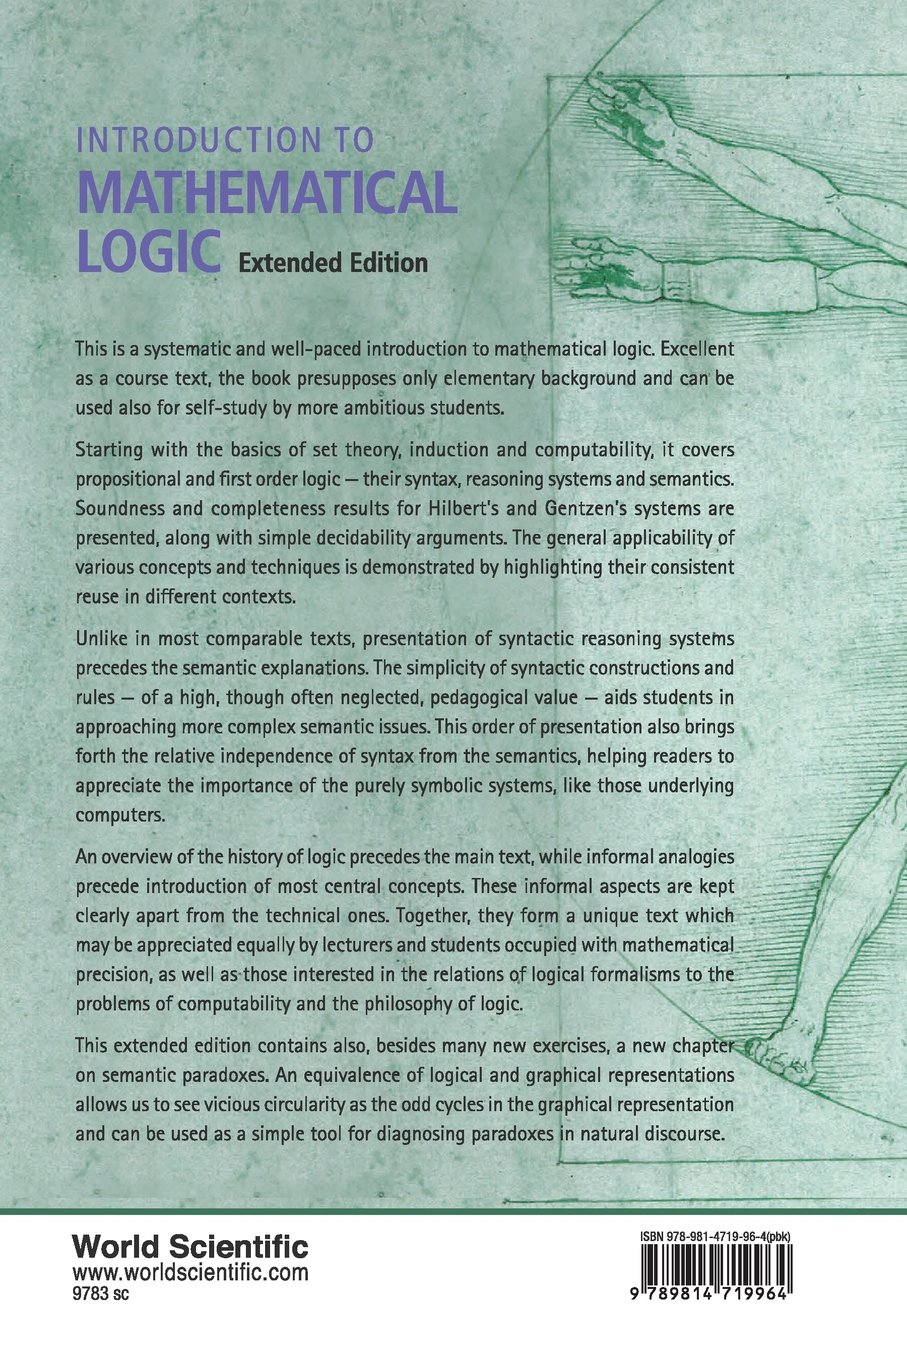 Introduction to Mathematical Logic: Extended Edition